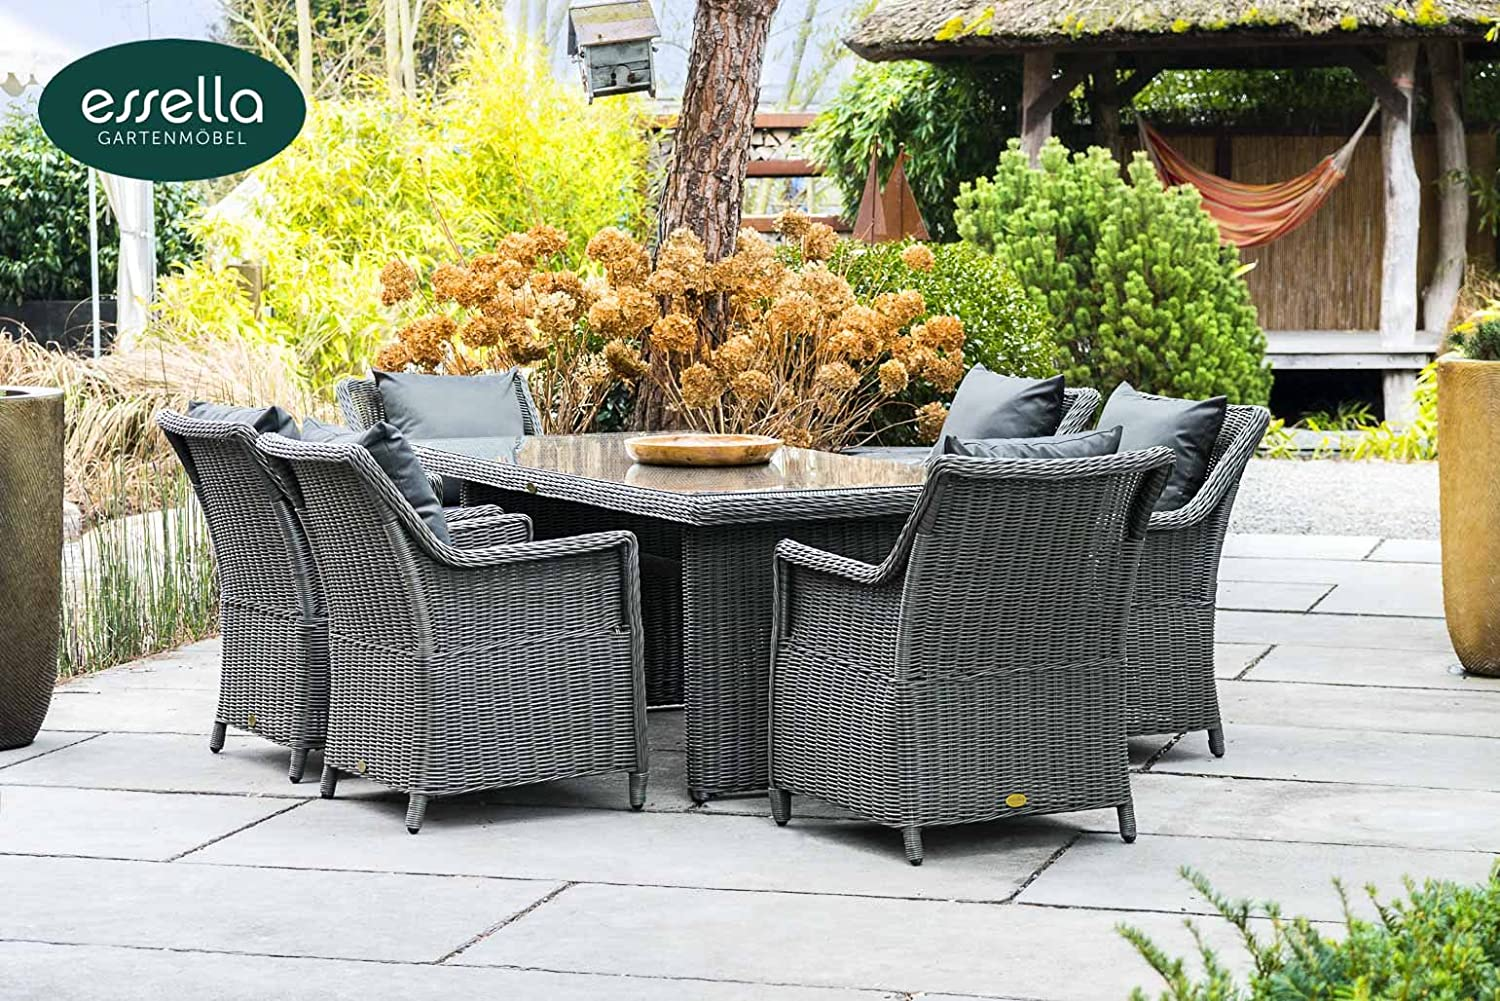 polyrattan sitzgruppe dubai 6 personen rundgeflecht grau rund gartenm bel. Black Bedroom Furniture Sets. Home Design Ideas